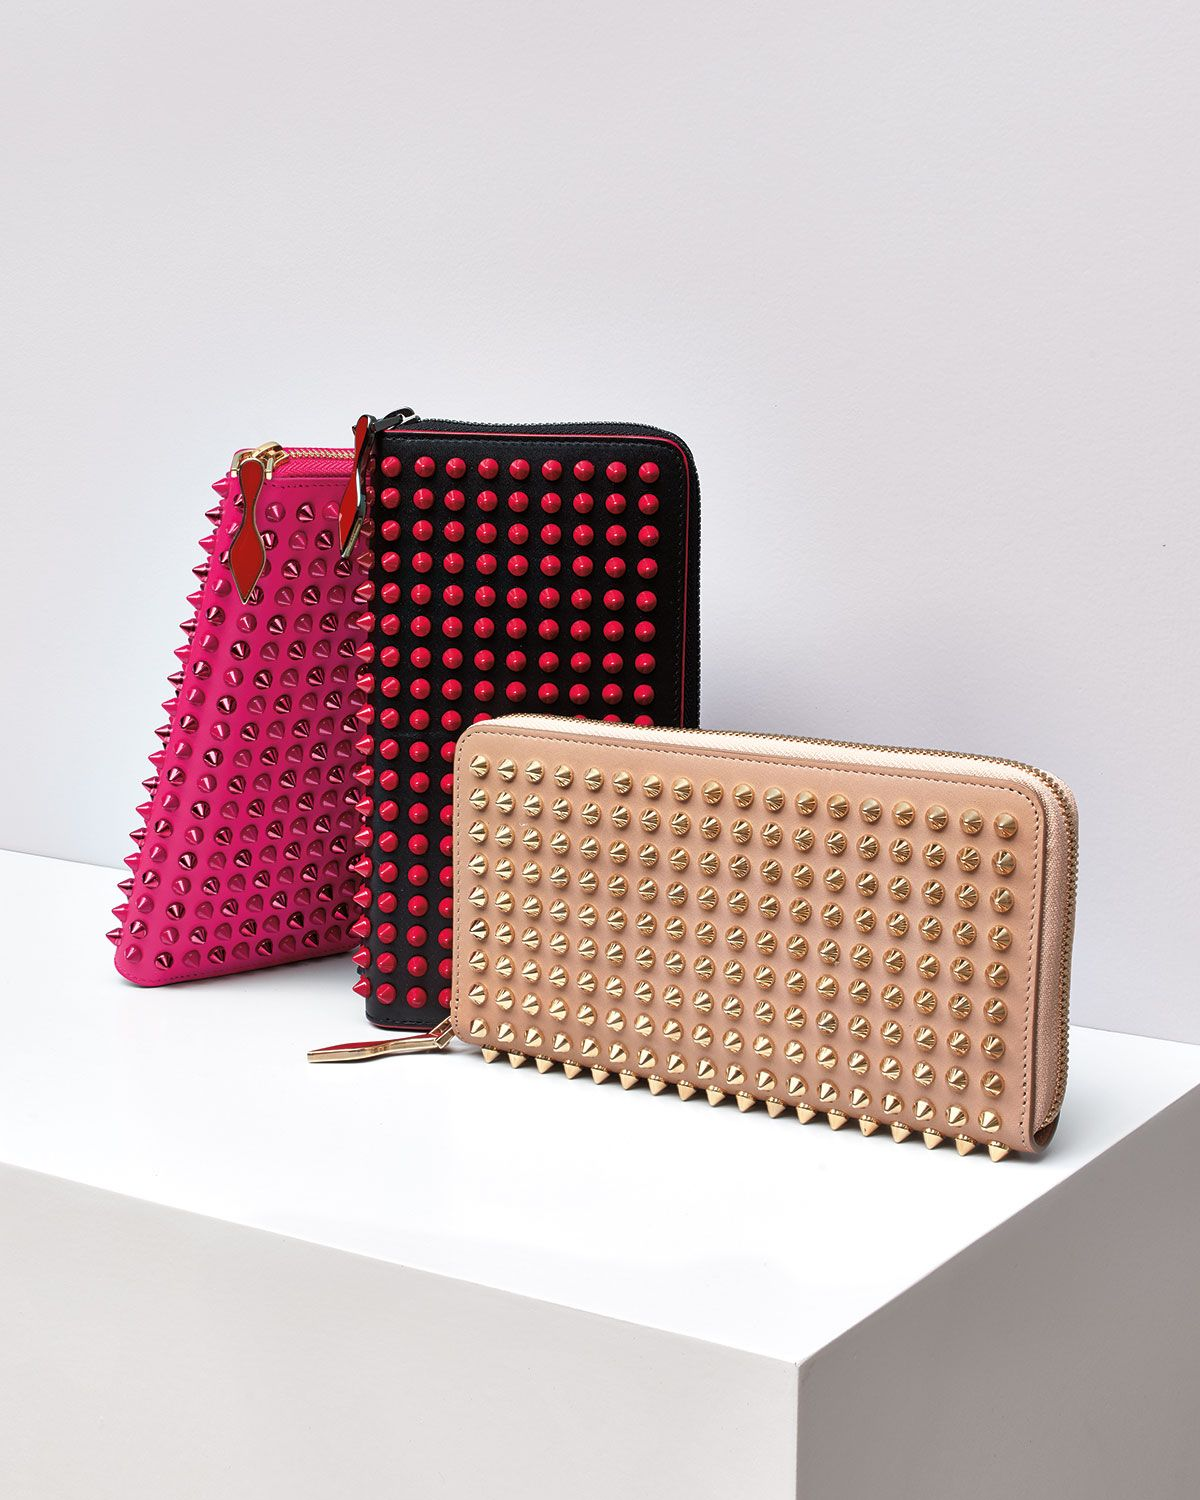 8b8c540cd0 Christian Louboutin Panettone Spike Stud Continental Wallets | The ...